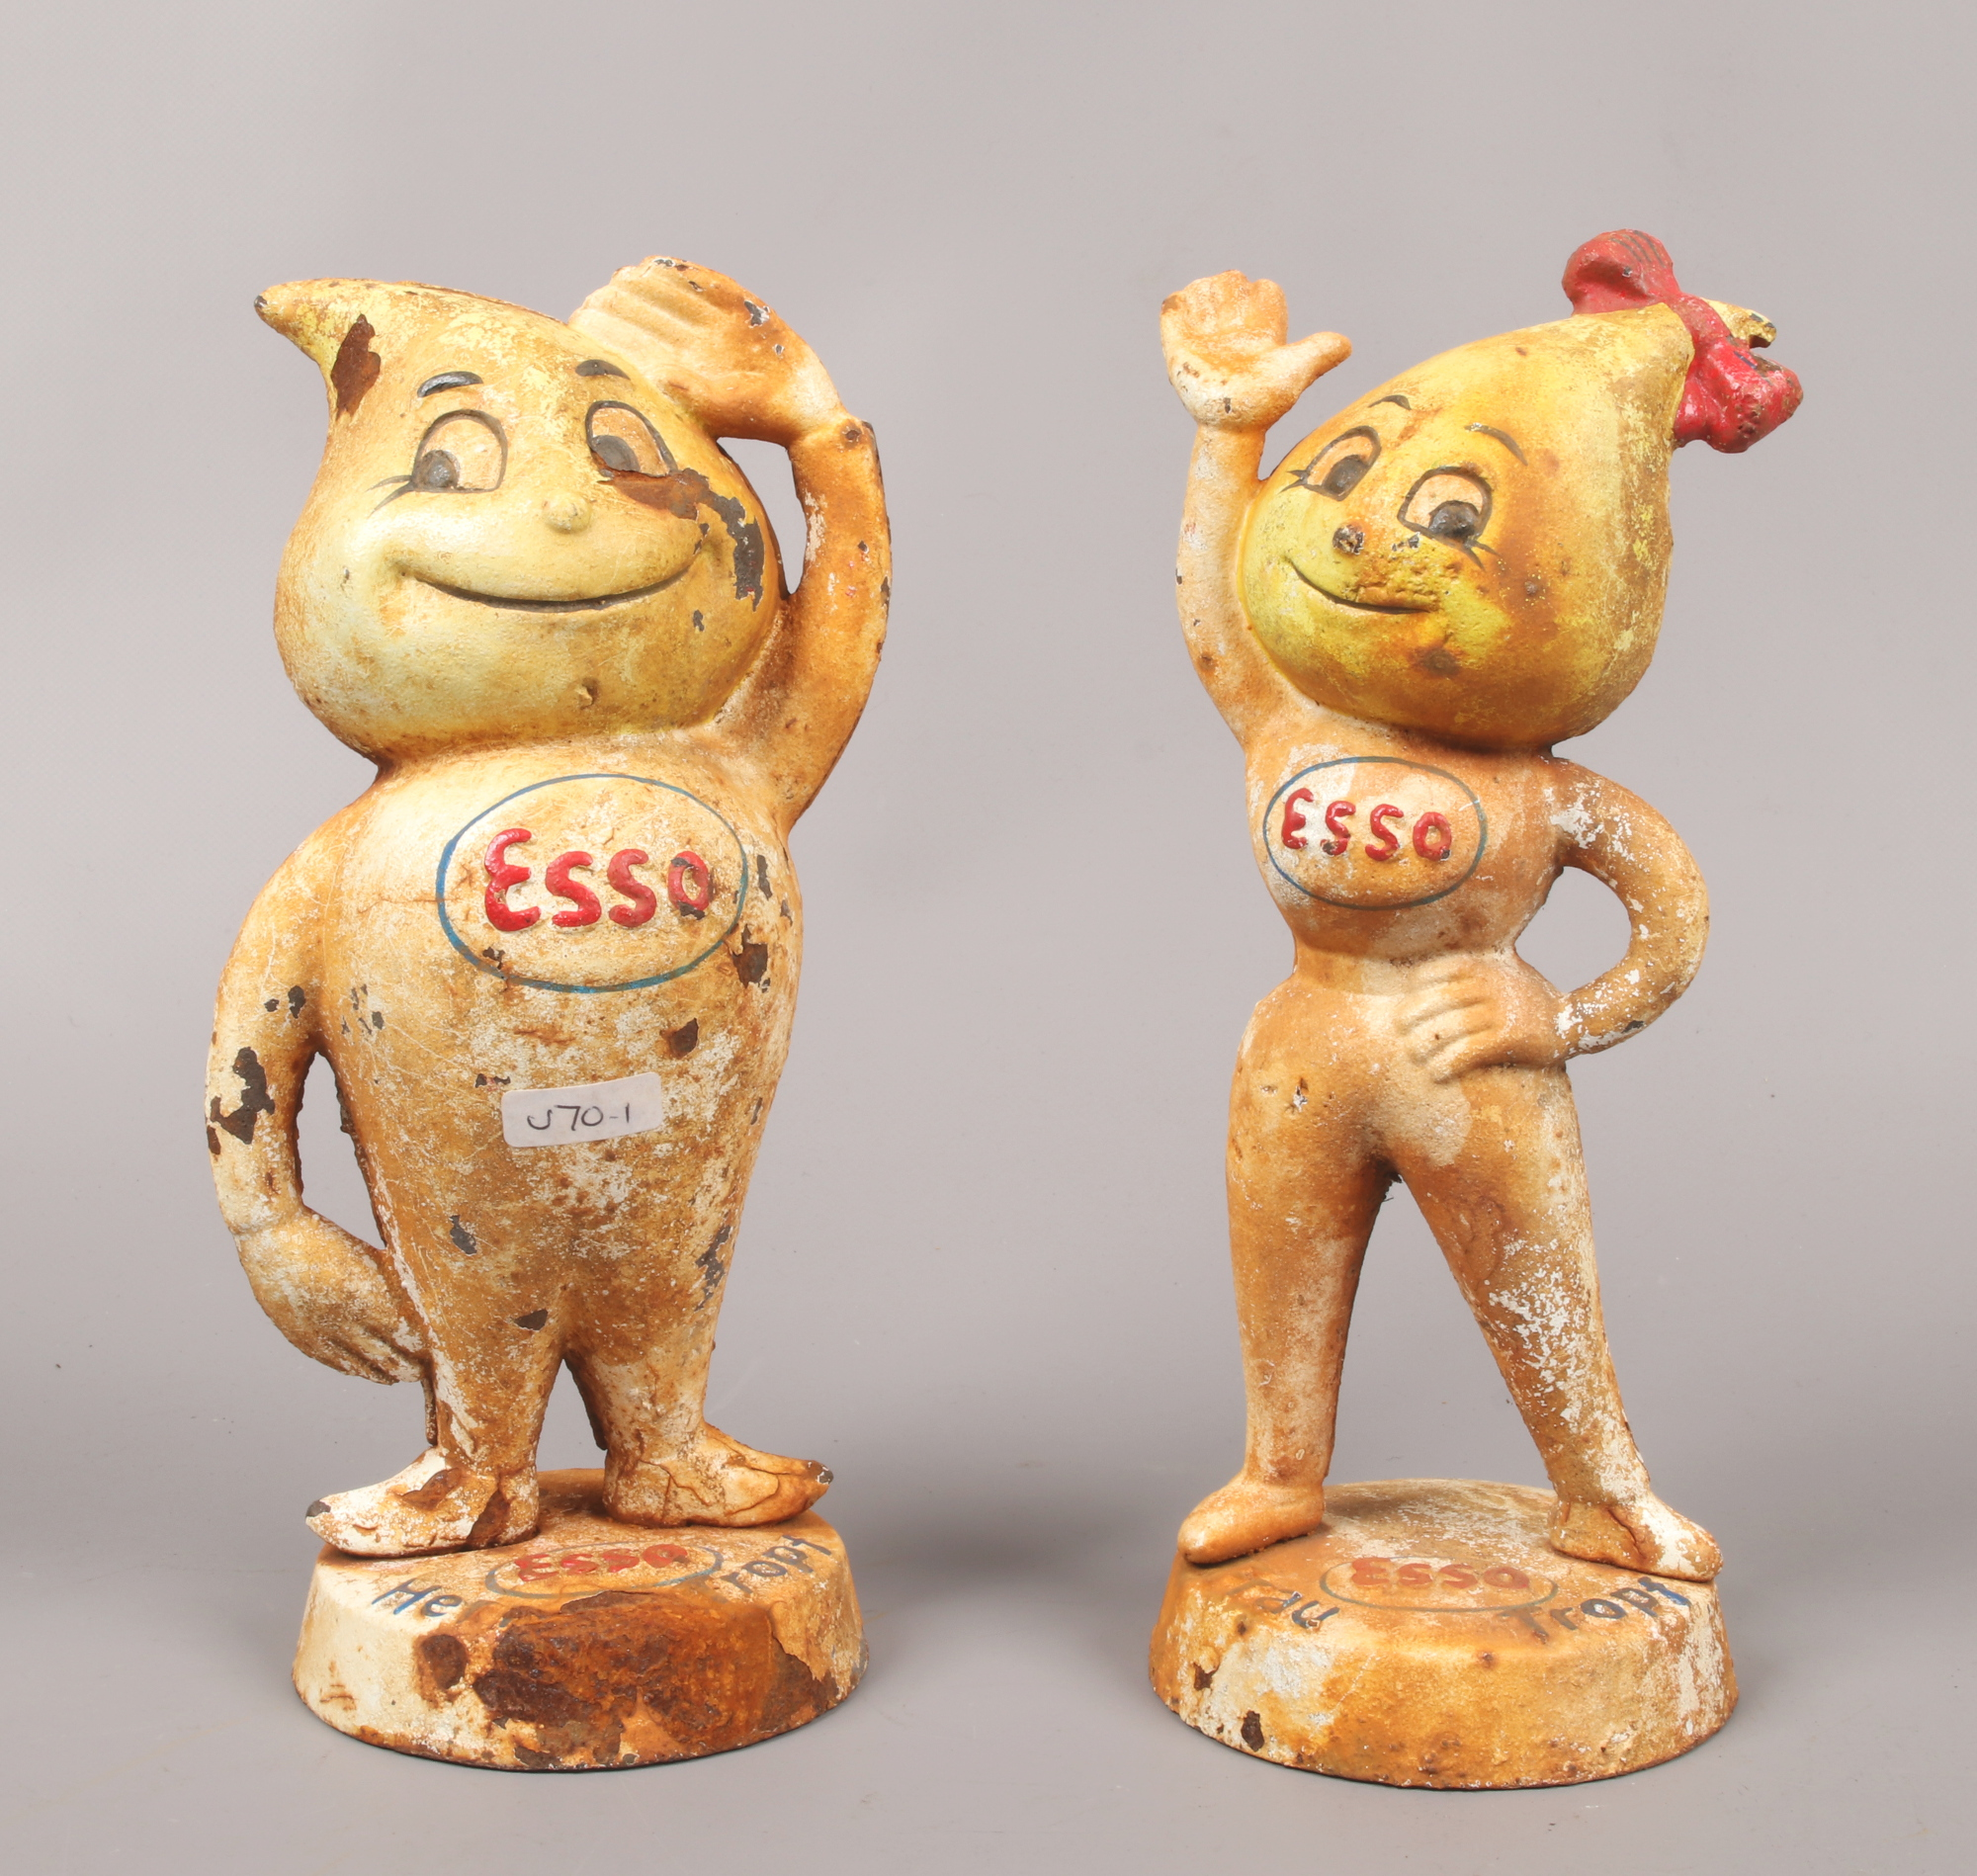 Lot 15 - Two ESSO advertising cast iron money boxes marked Herr Tropf and Frau Tropf, standing 23.5cm tall.